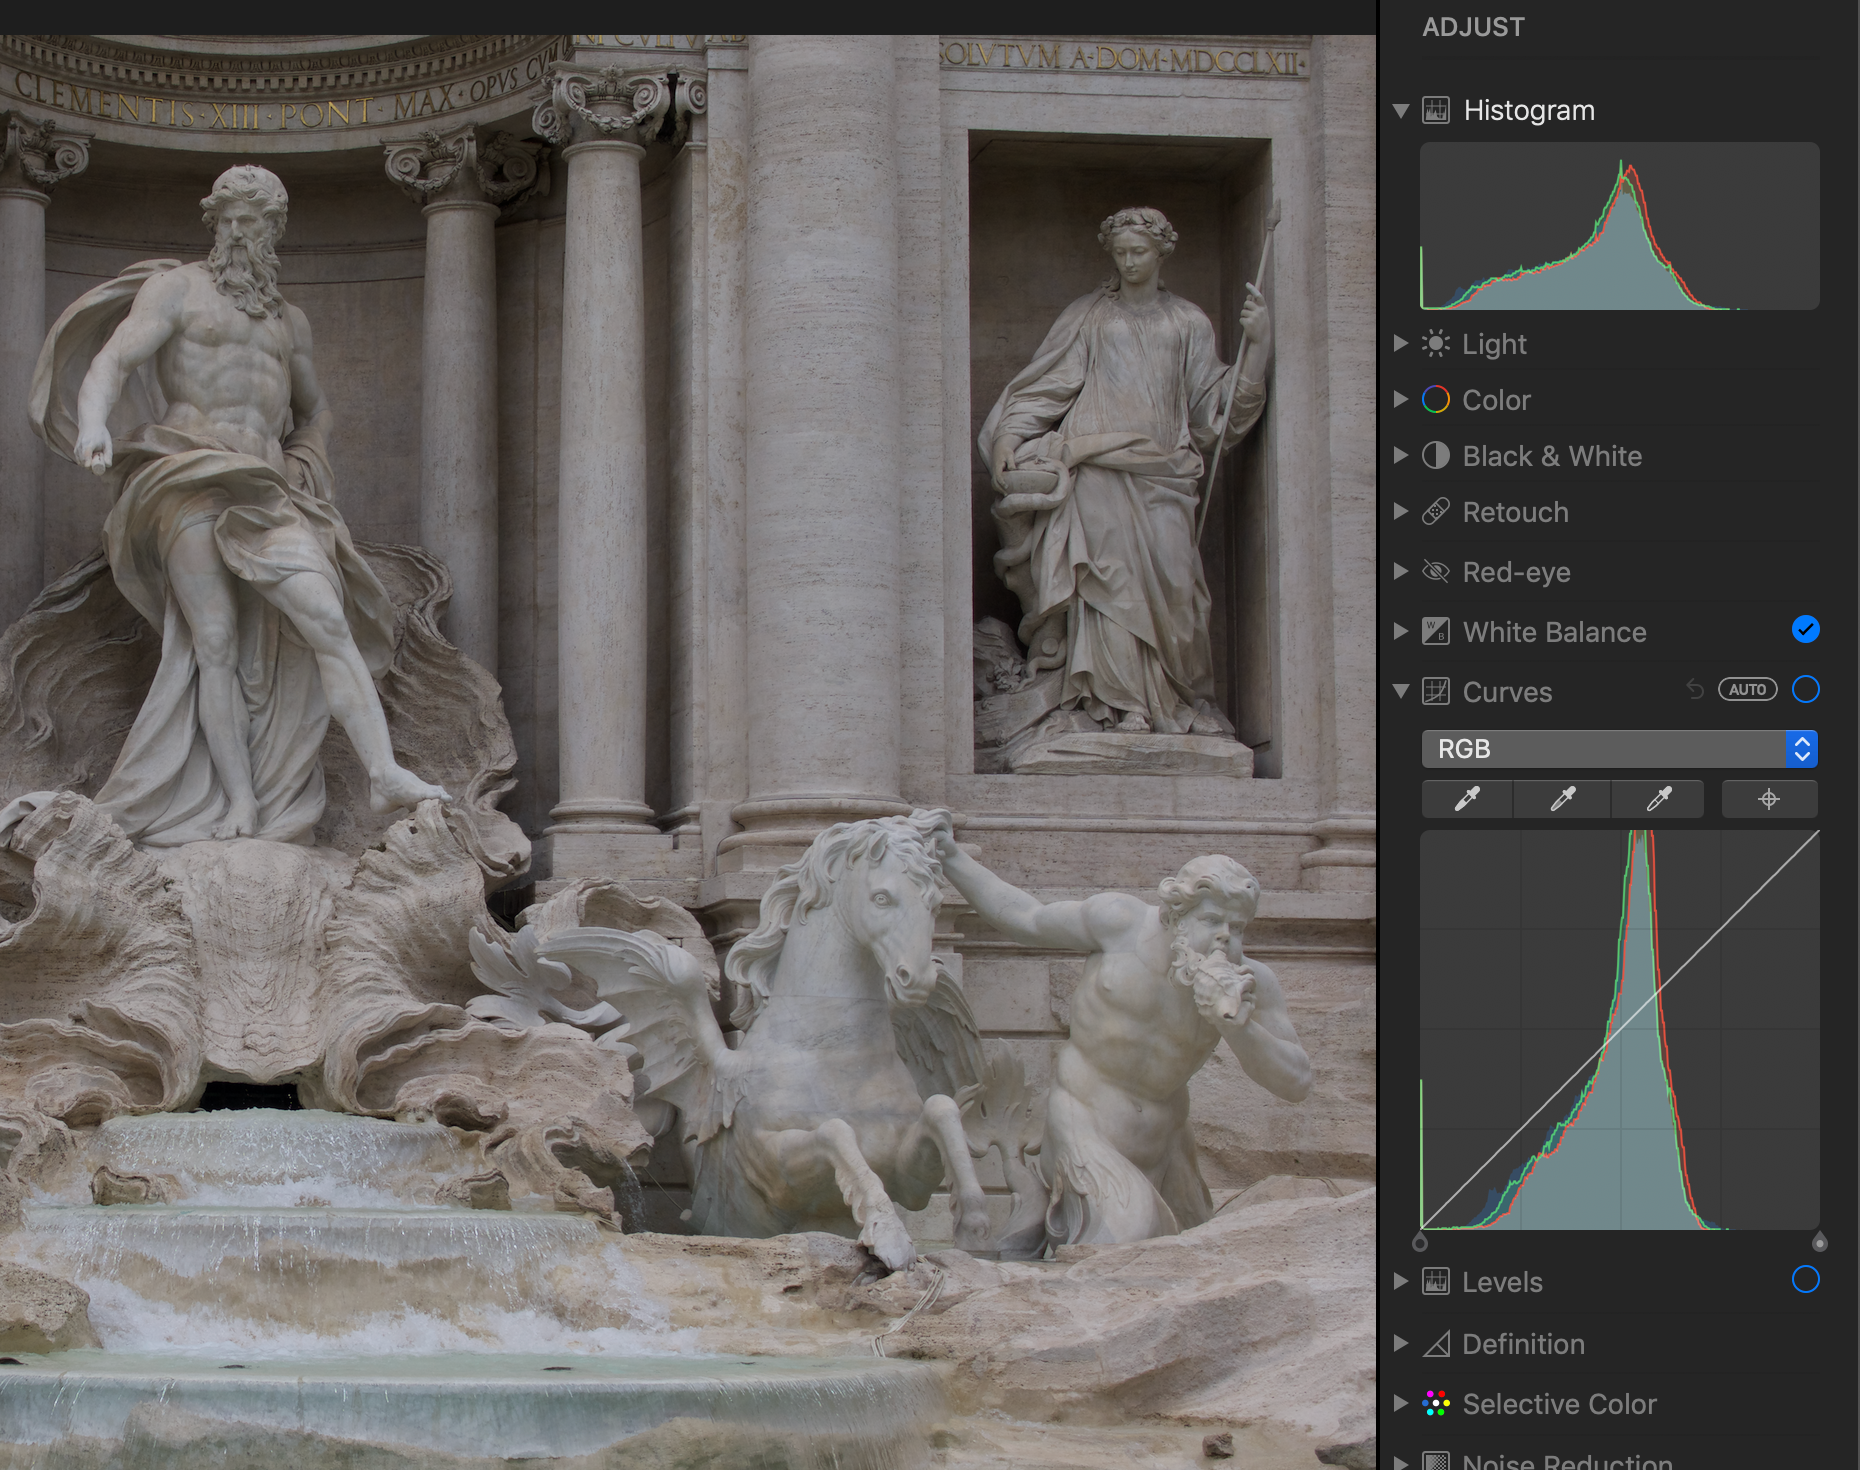 23:00 The Histogram and the Curves control; the straight diagonal line in Curves means no edit has been applied.